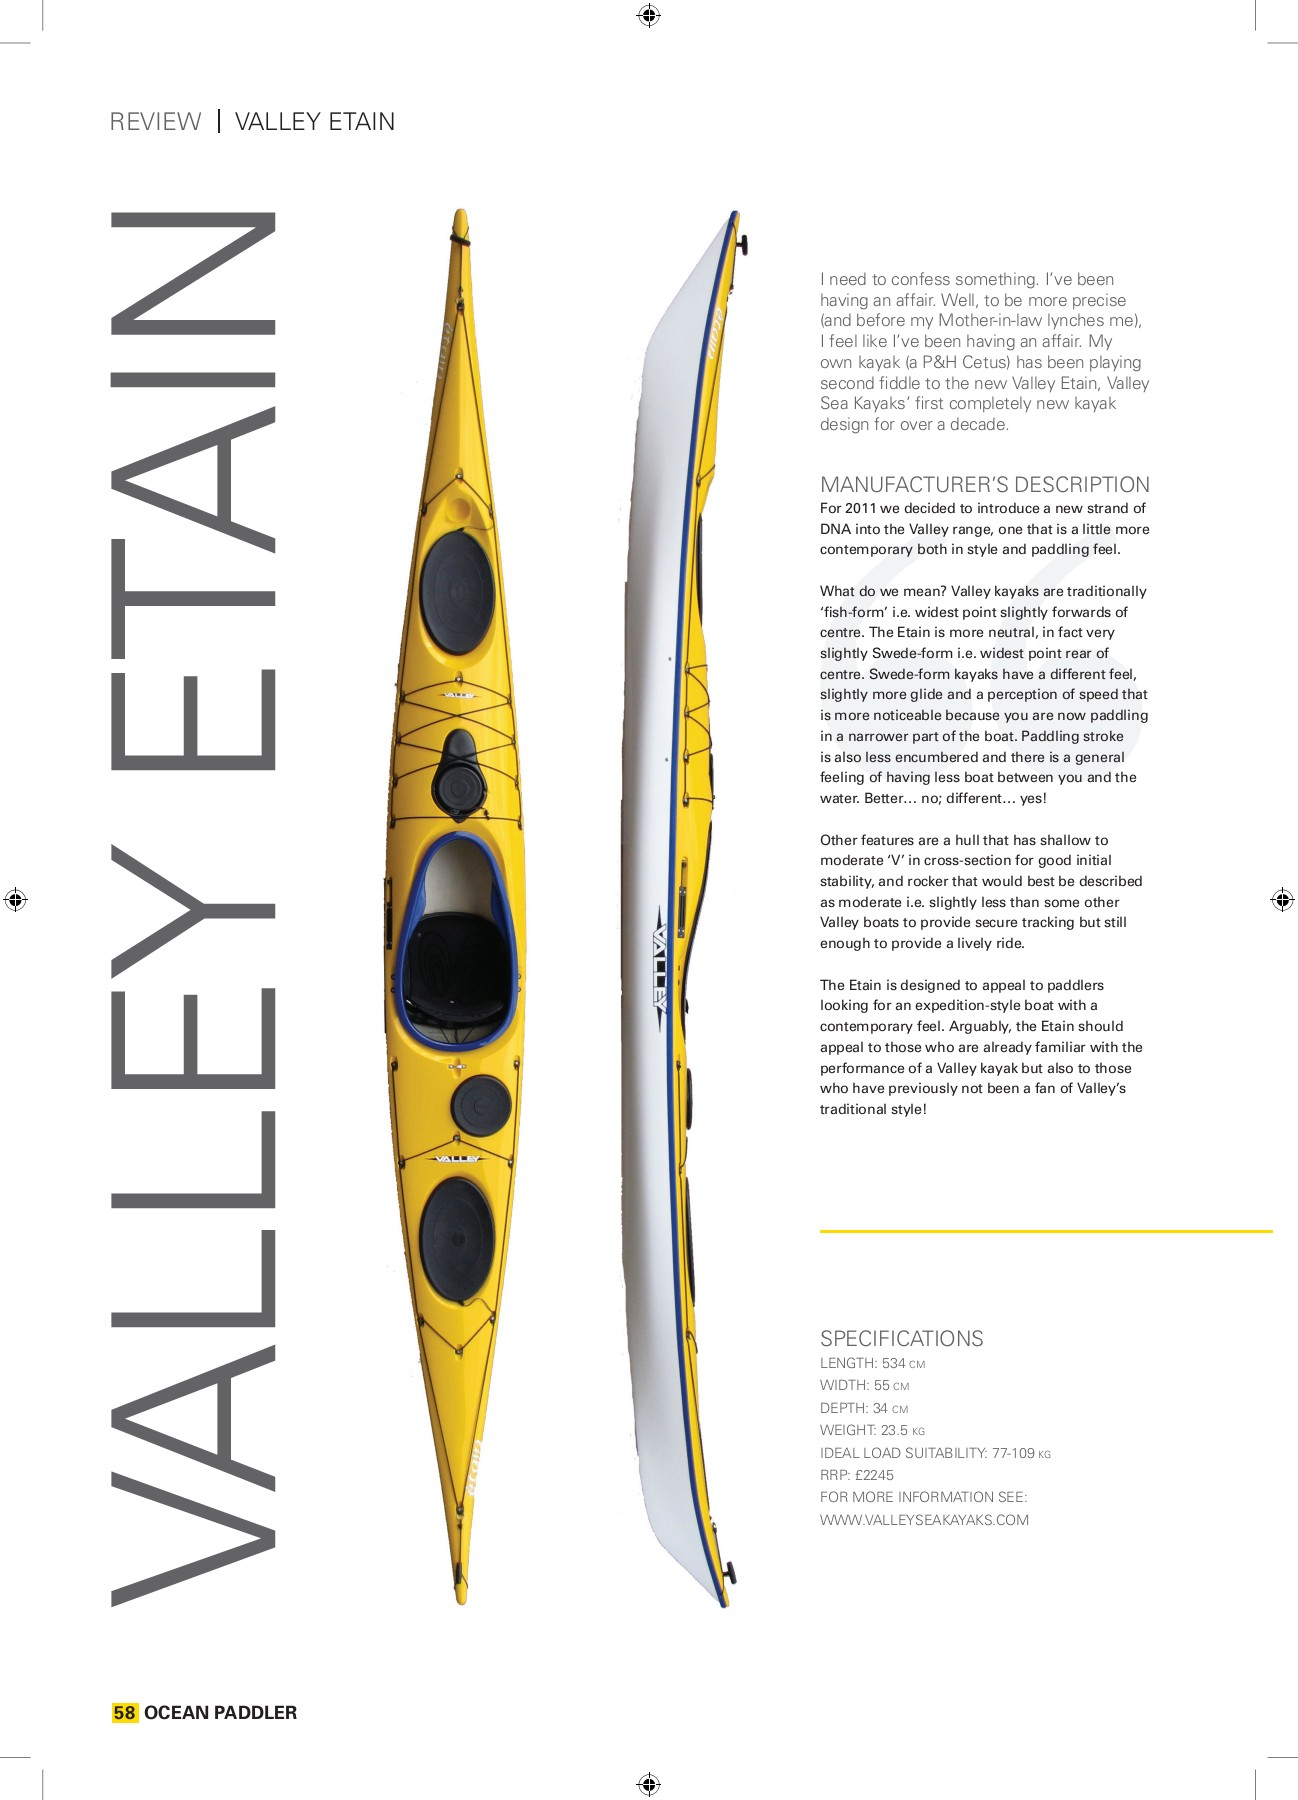 rEVIEW VallEy EtaIn - Expedition Kayaks Pages 1 - 6 - Text